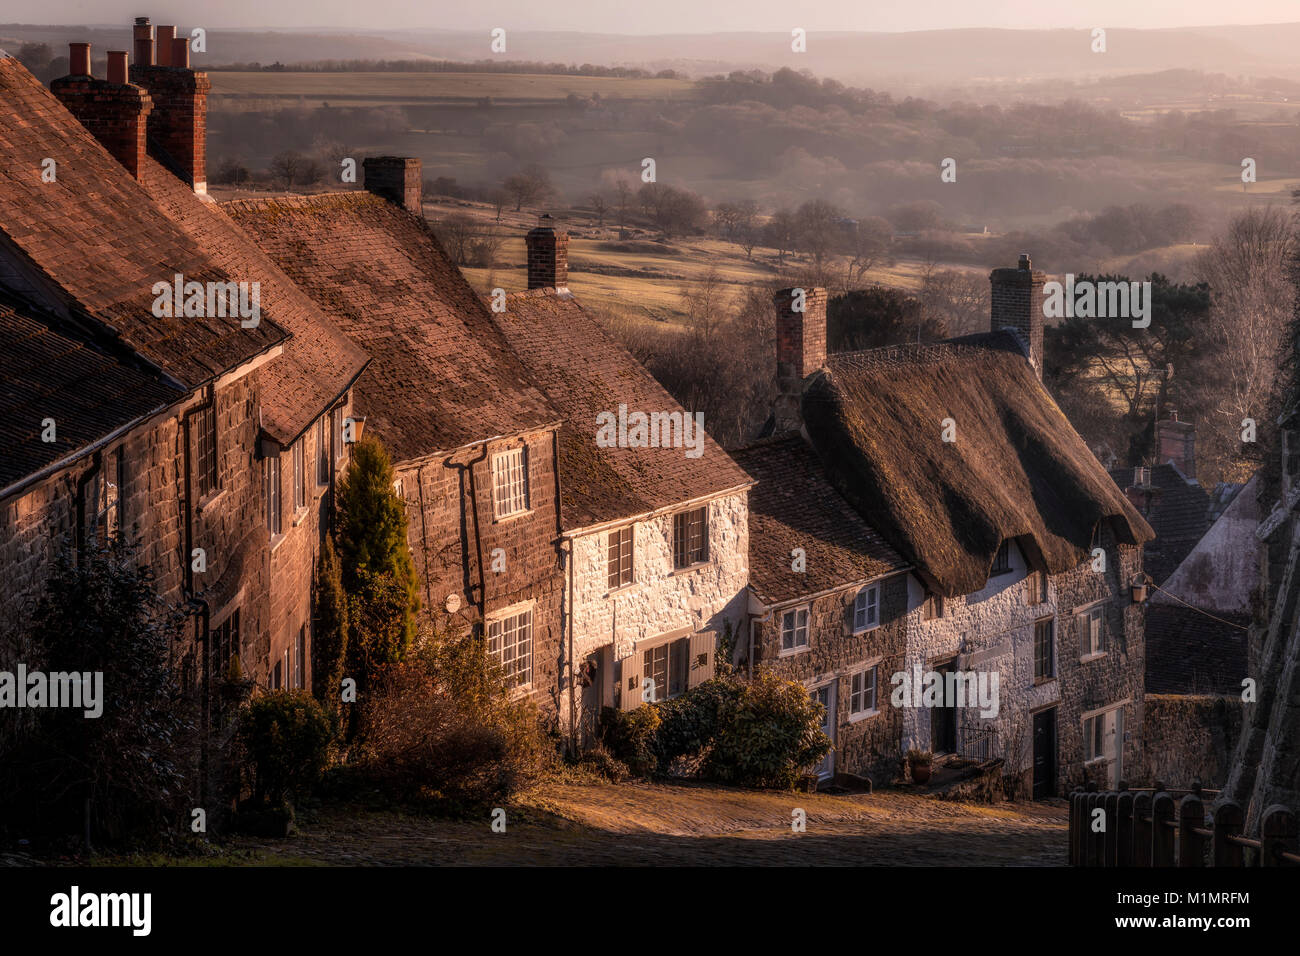 Shaftesbury, Gold Hill, Dorset, England, United Kingdom - Stock Image